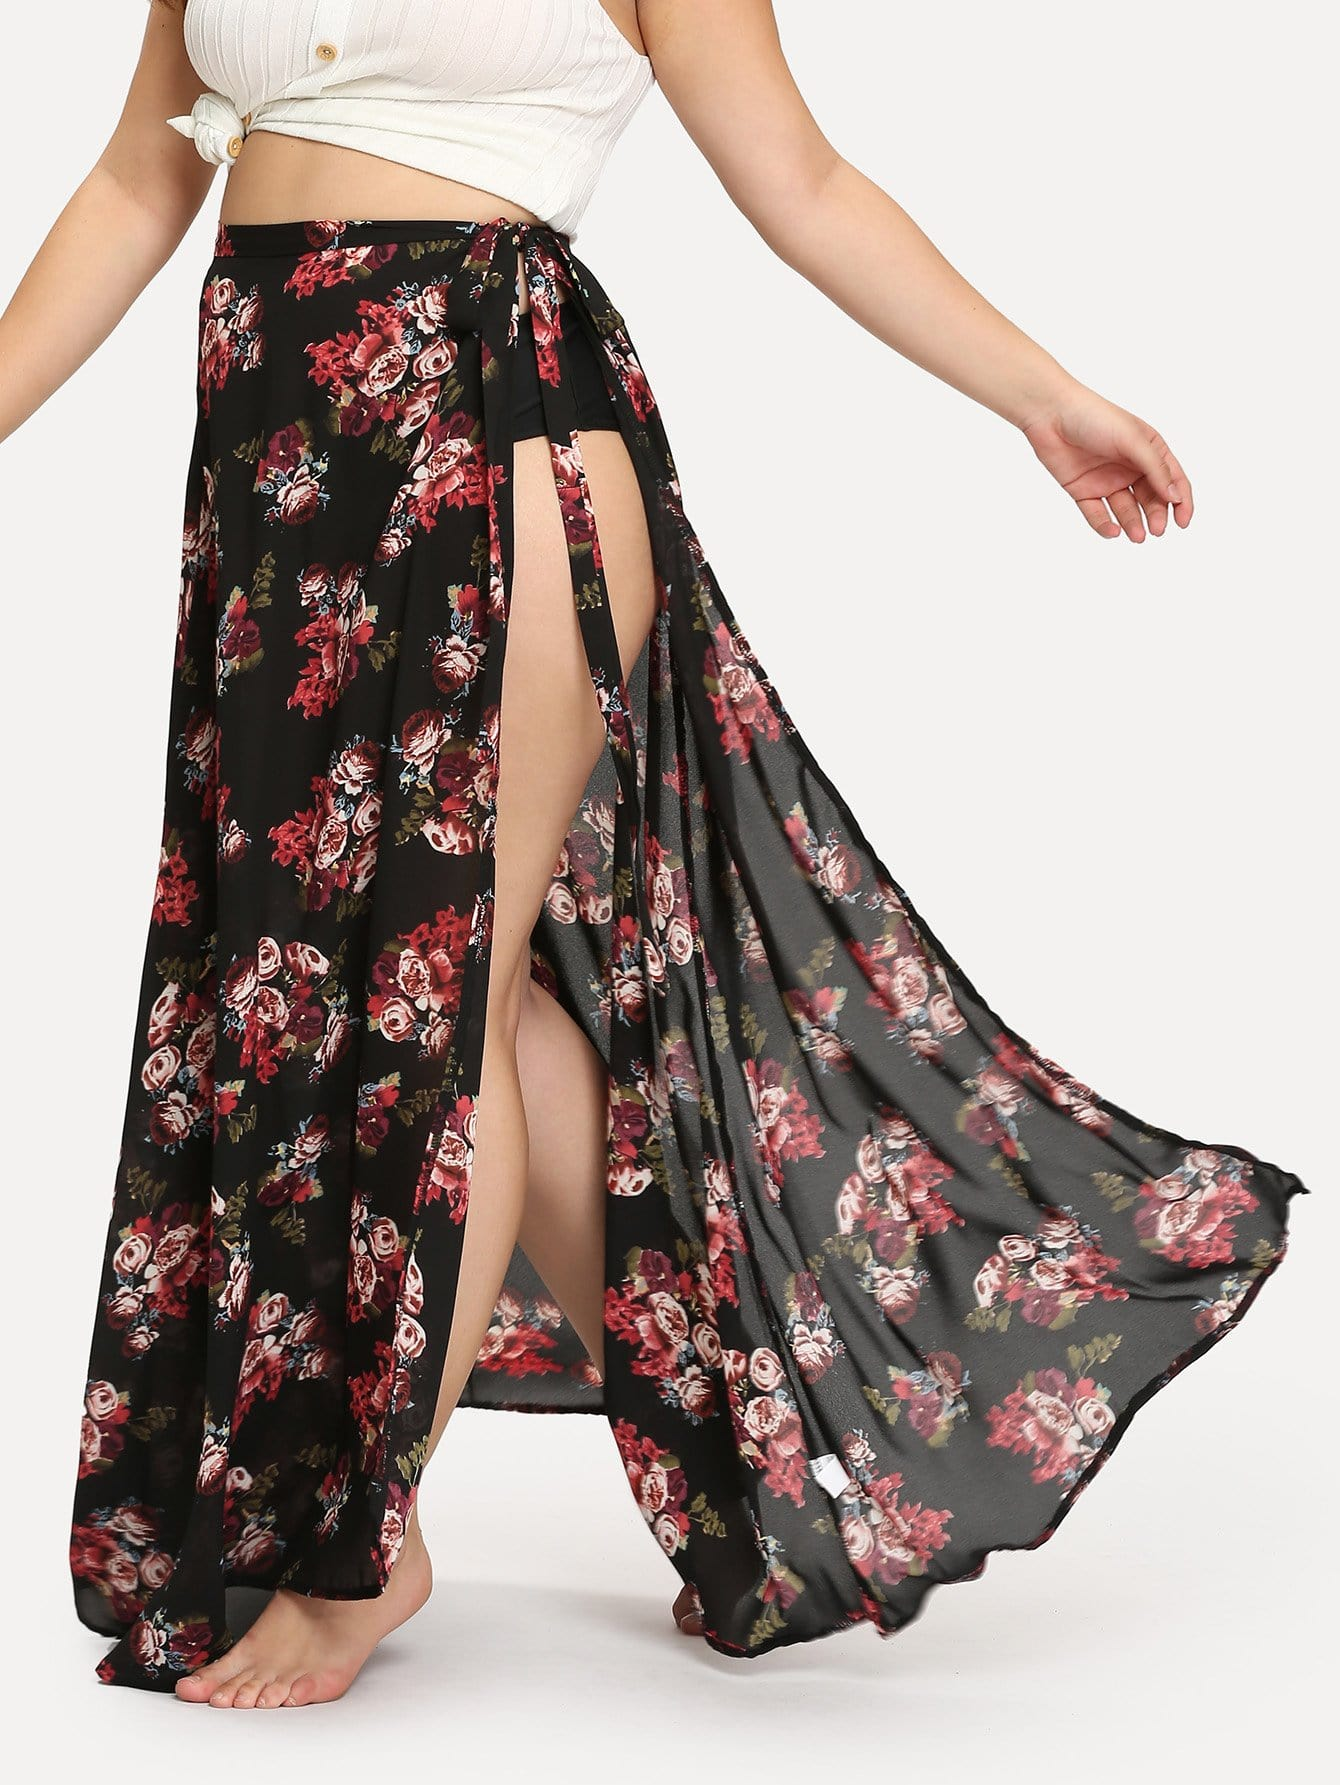 Plus All Over Florals High Slit Skirt how to be a сonservative